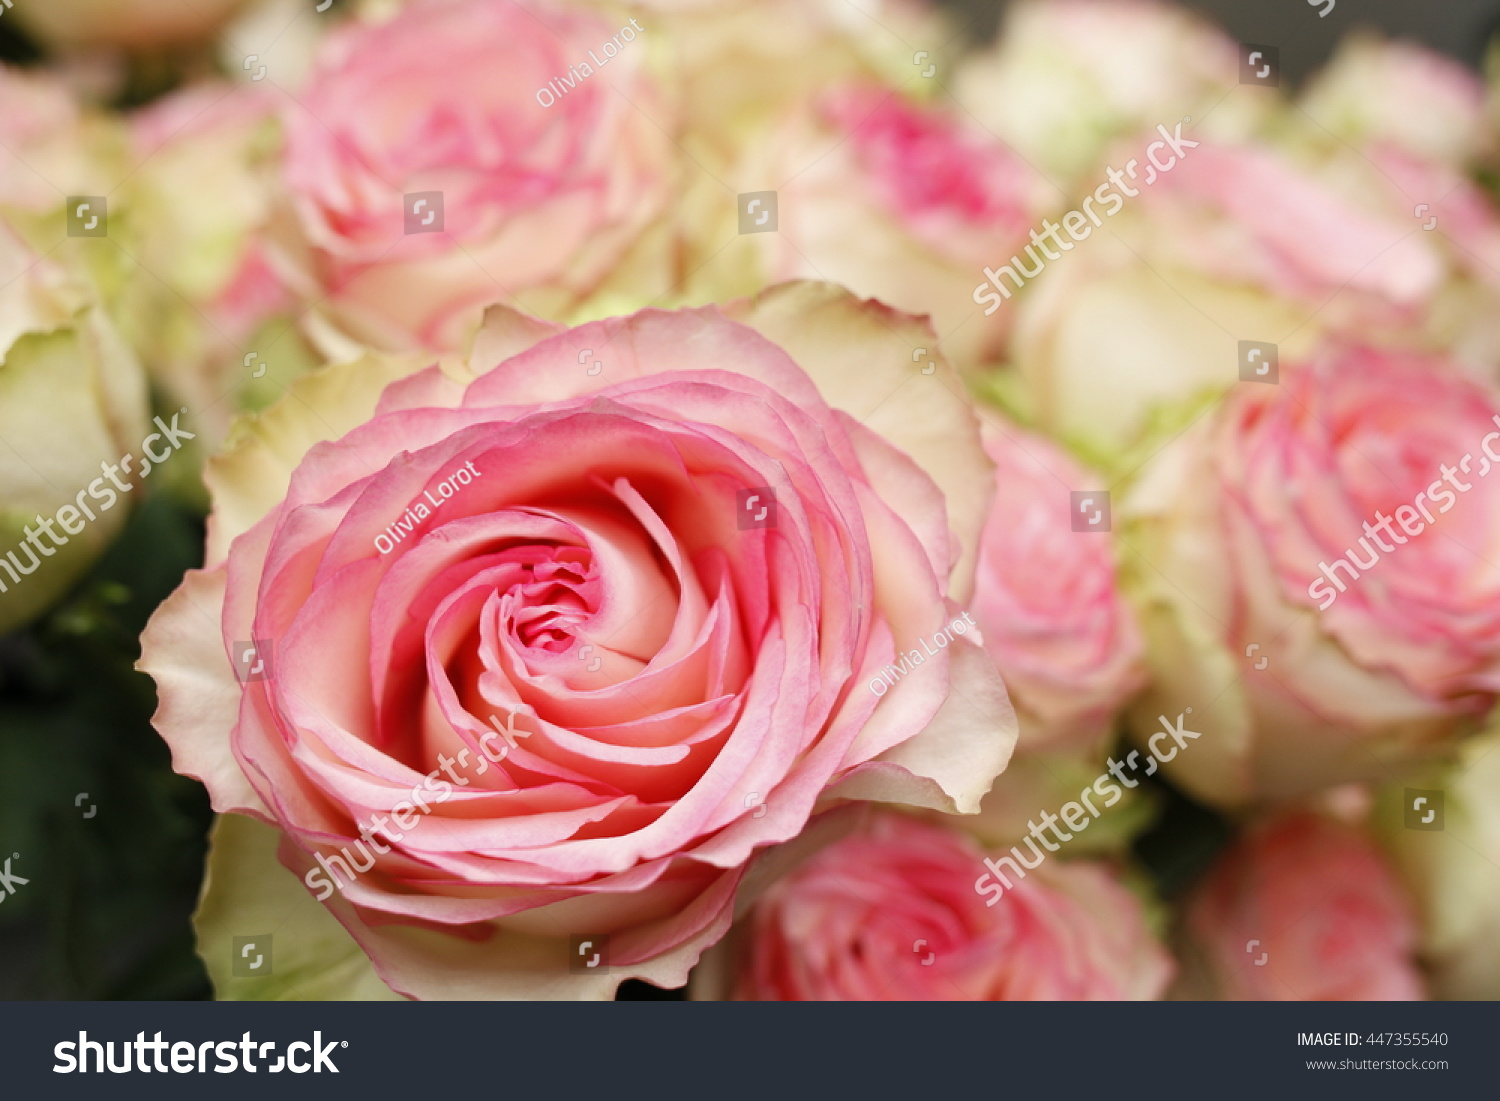 Pink White Rose Bouquet Wallpaper Stock Photo Edit Now 447355540